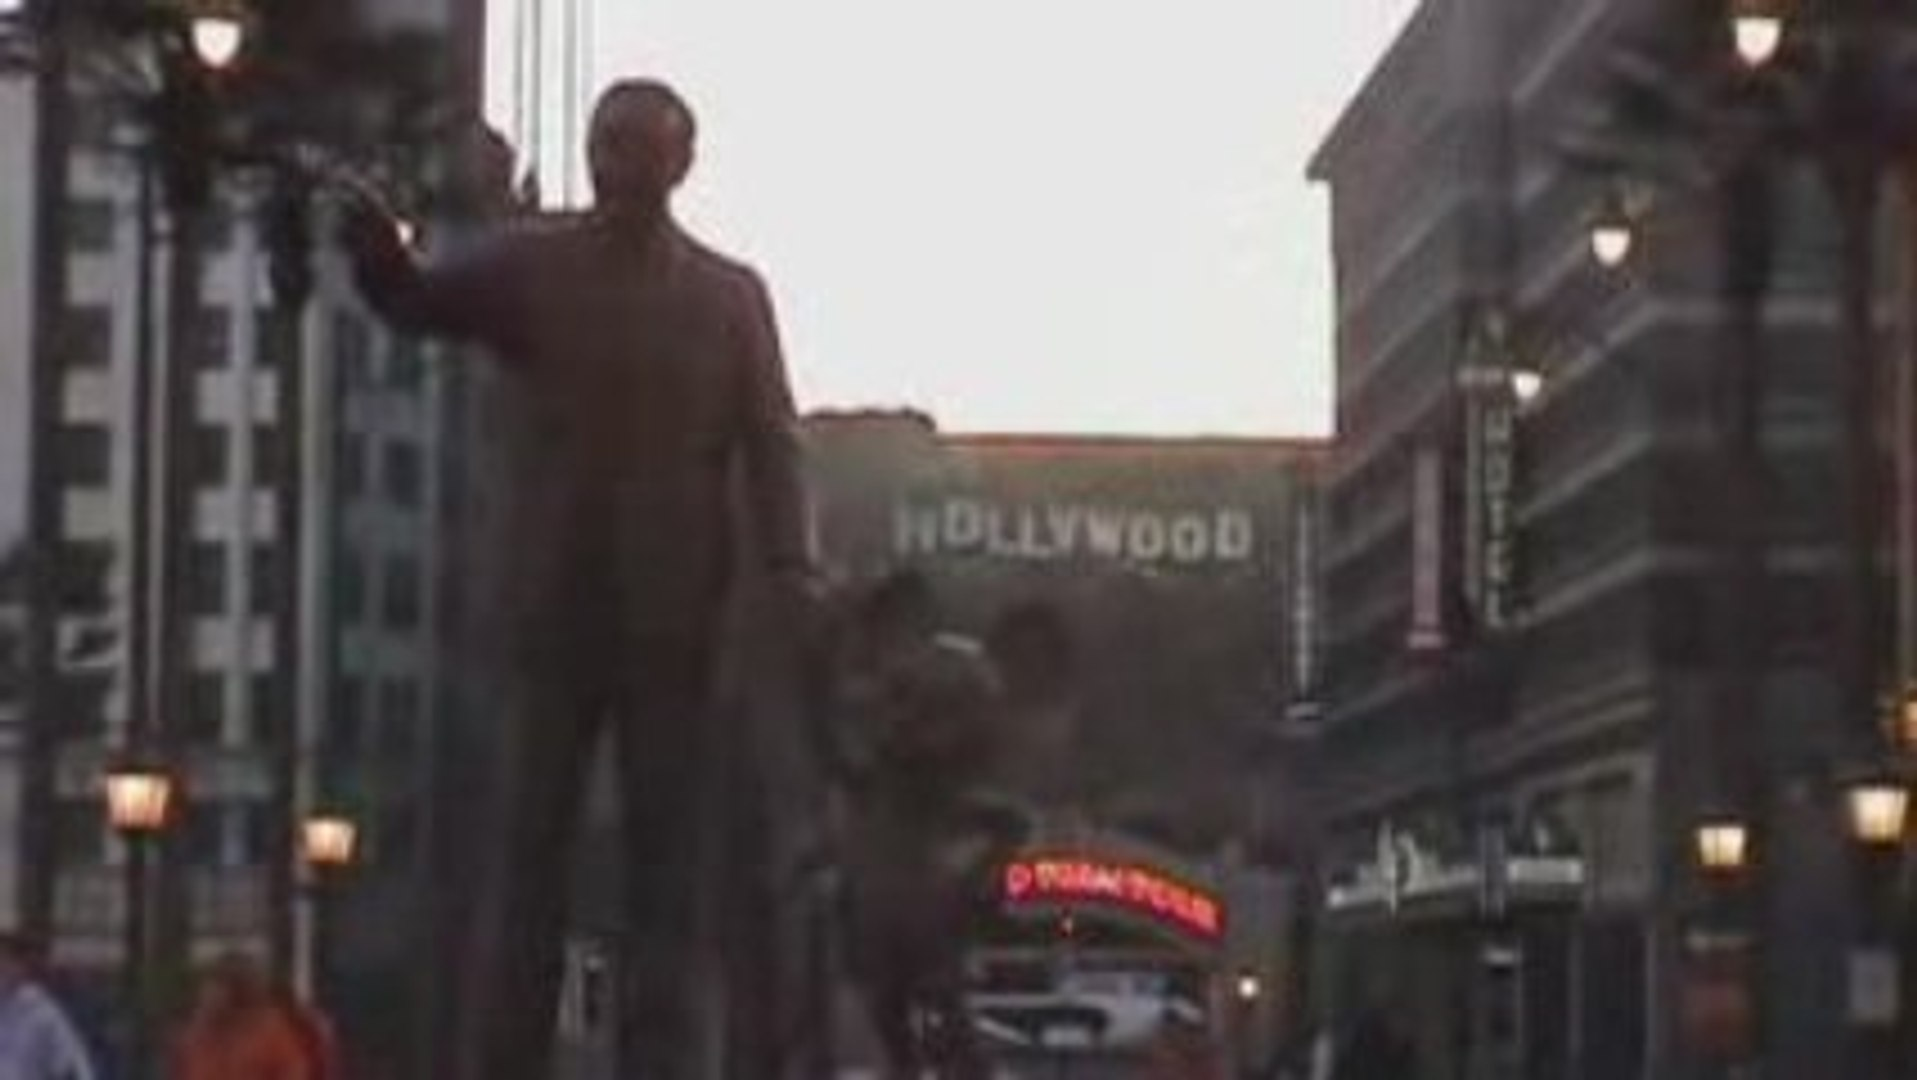 Hollywood Boulevard tour